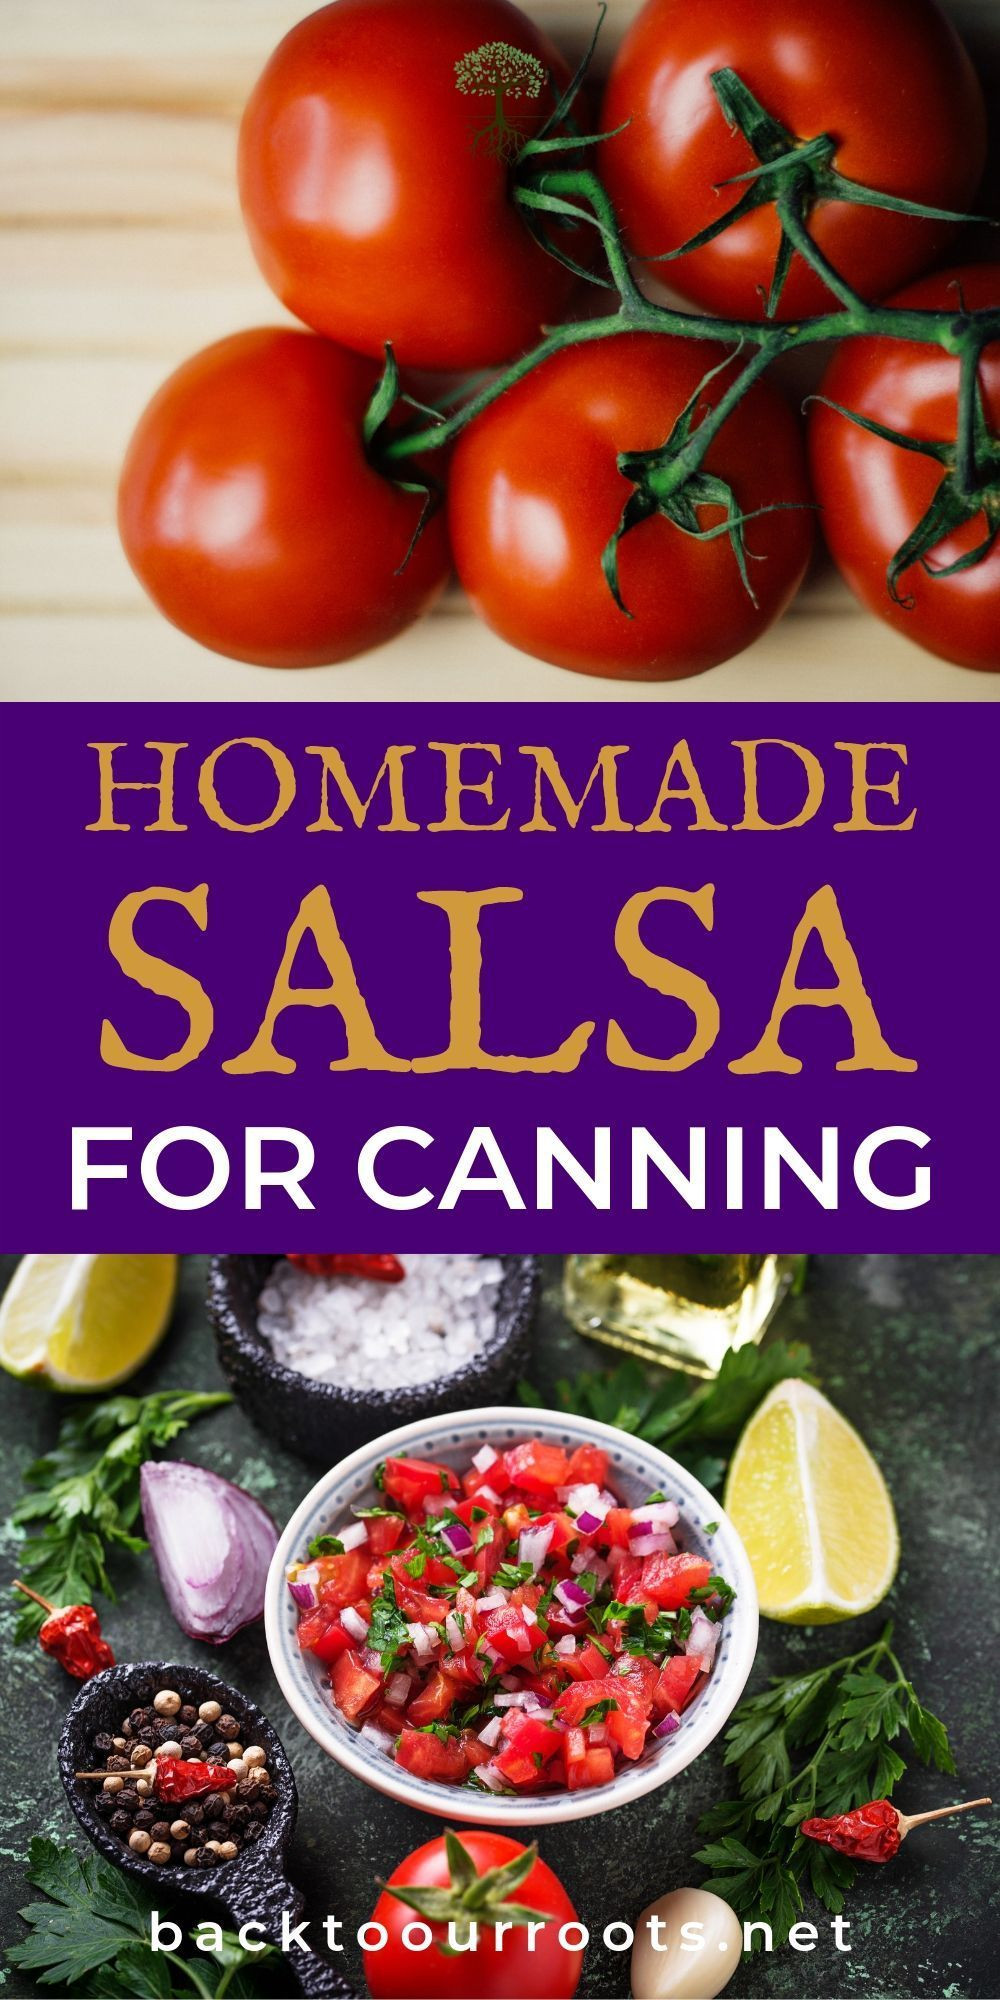 Mexican Salsa Recipe For Canning  The Best Homemade Salsa Recipe for Canning